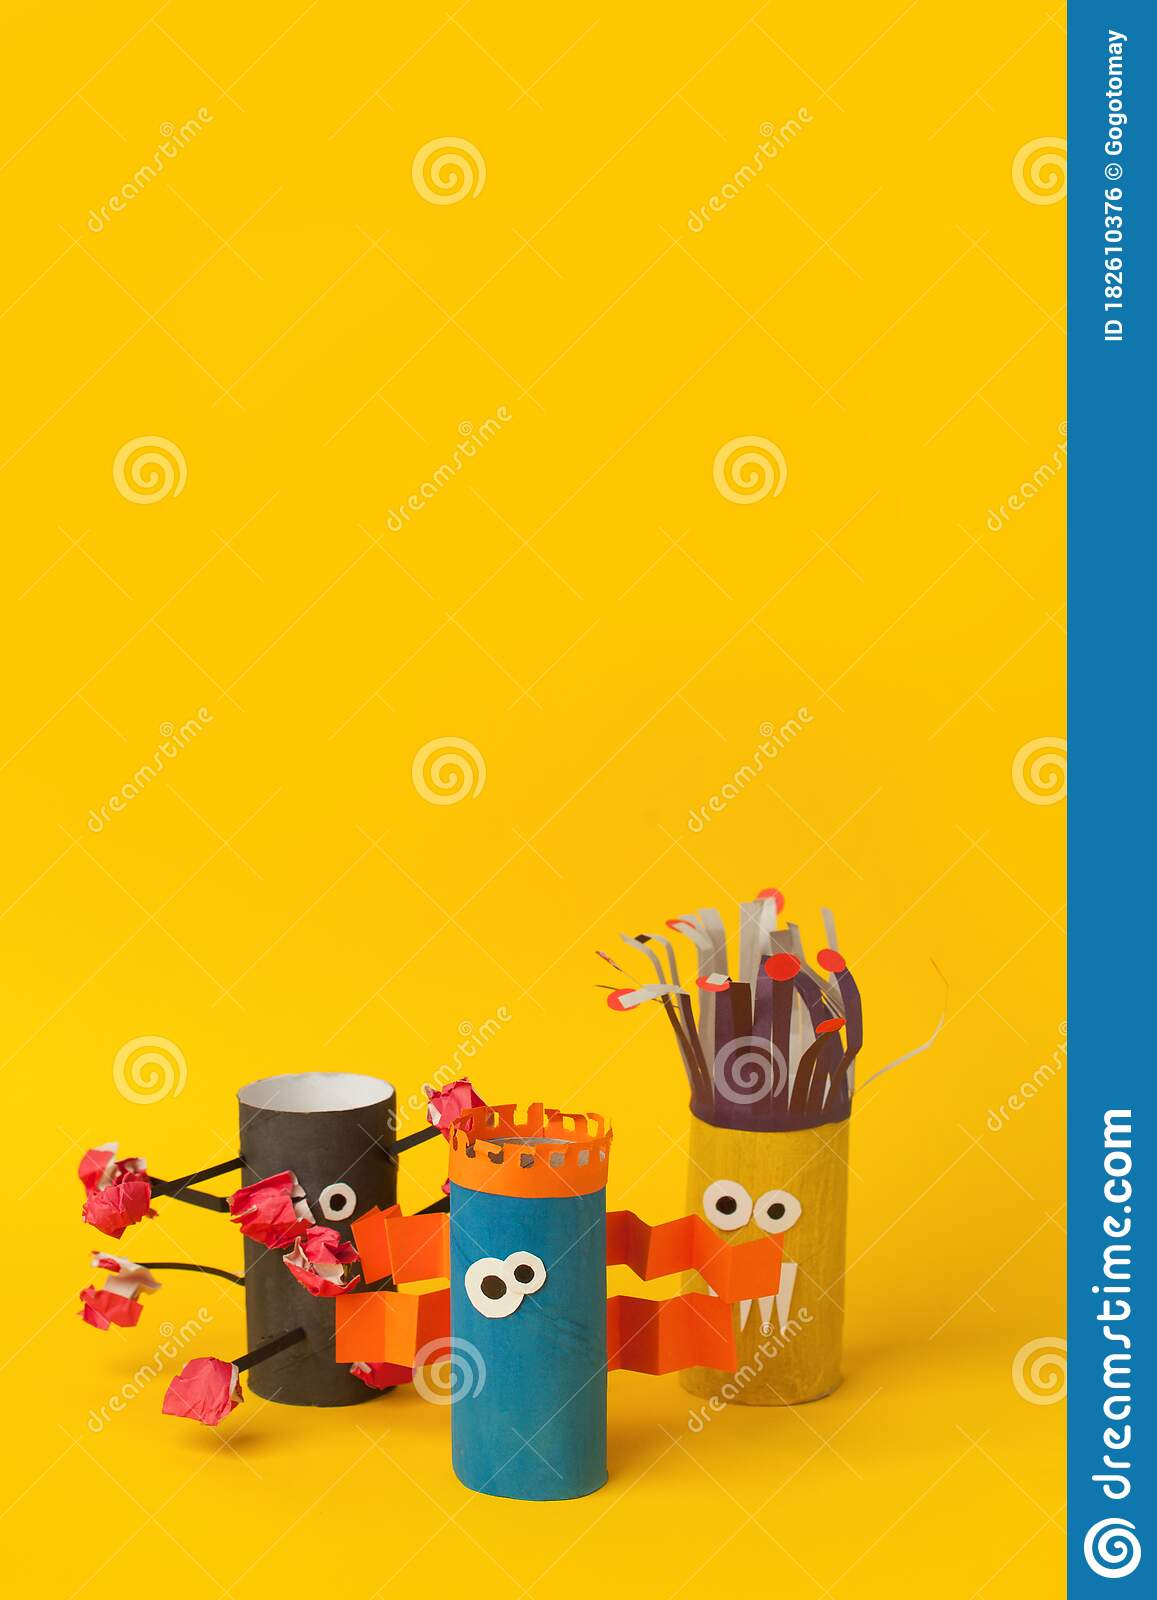 Kids Art Therapy Coronavirus Pandemic Halloween Crafts Paper Monsters On Blue Paper Background With Copy Space For Text Stock Photo Image Of Antistress Creative 182610376